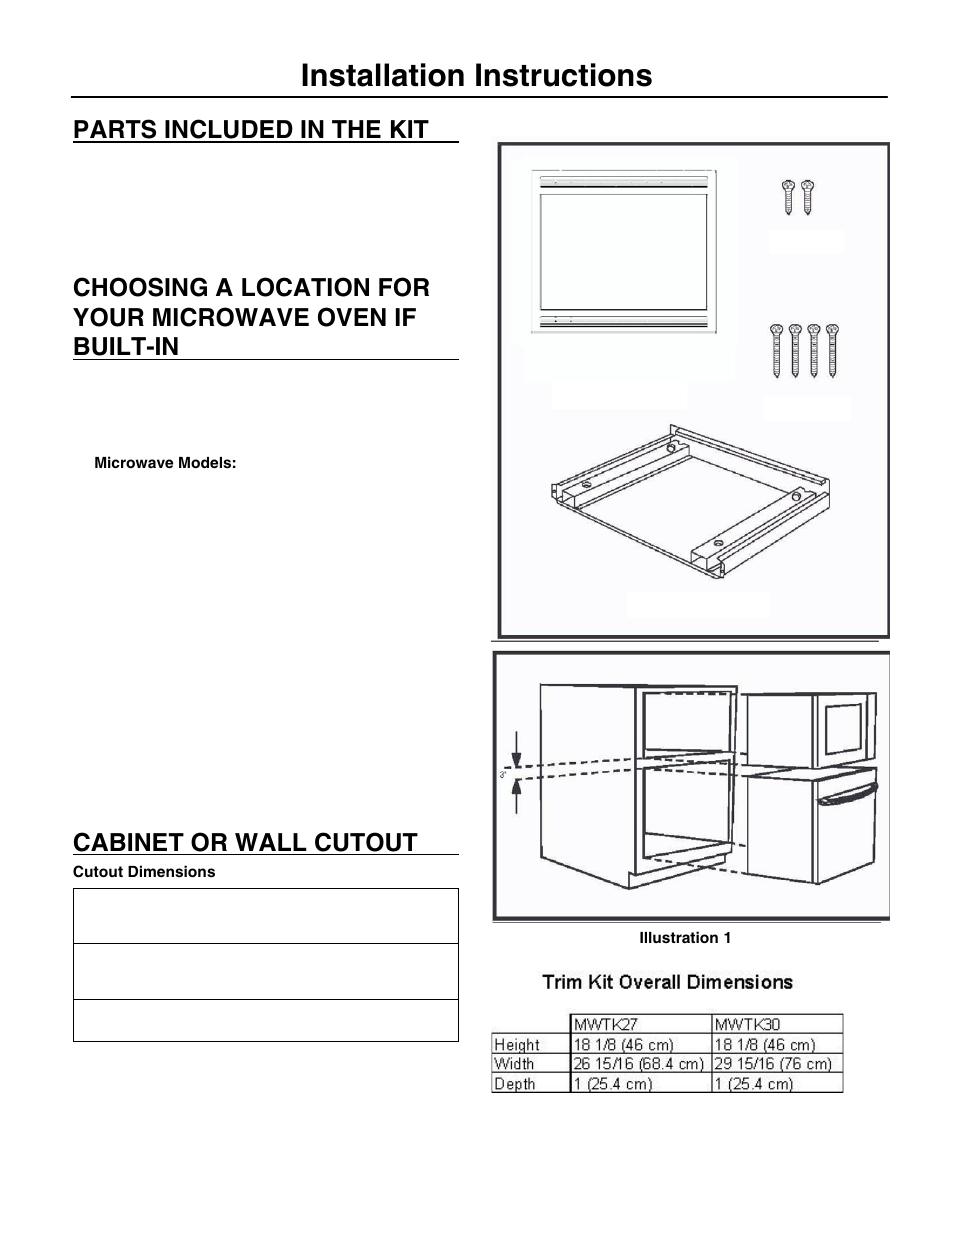 Installation Instructions Parts Included In The Kit